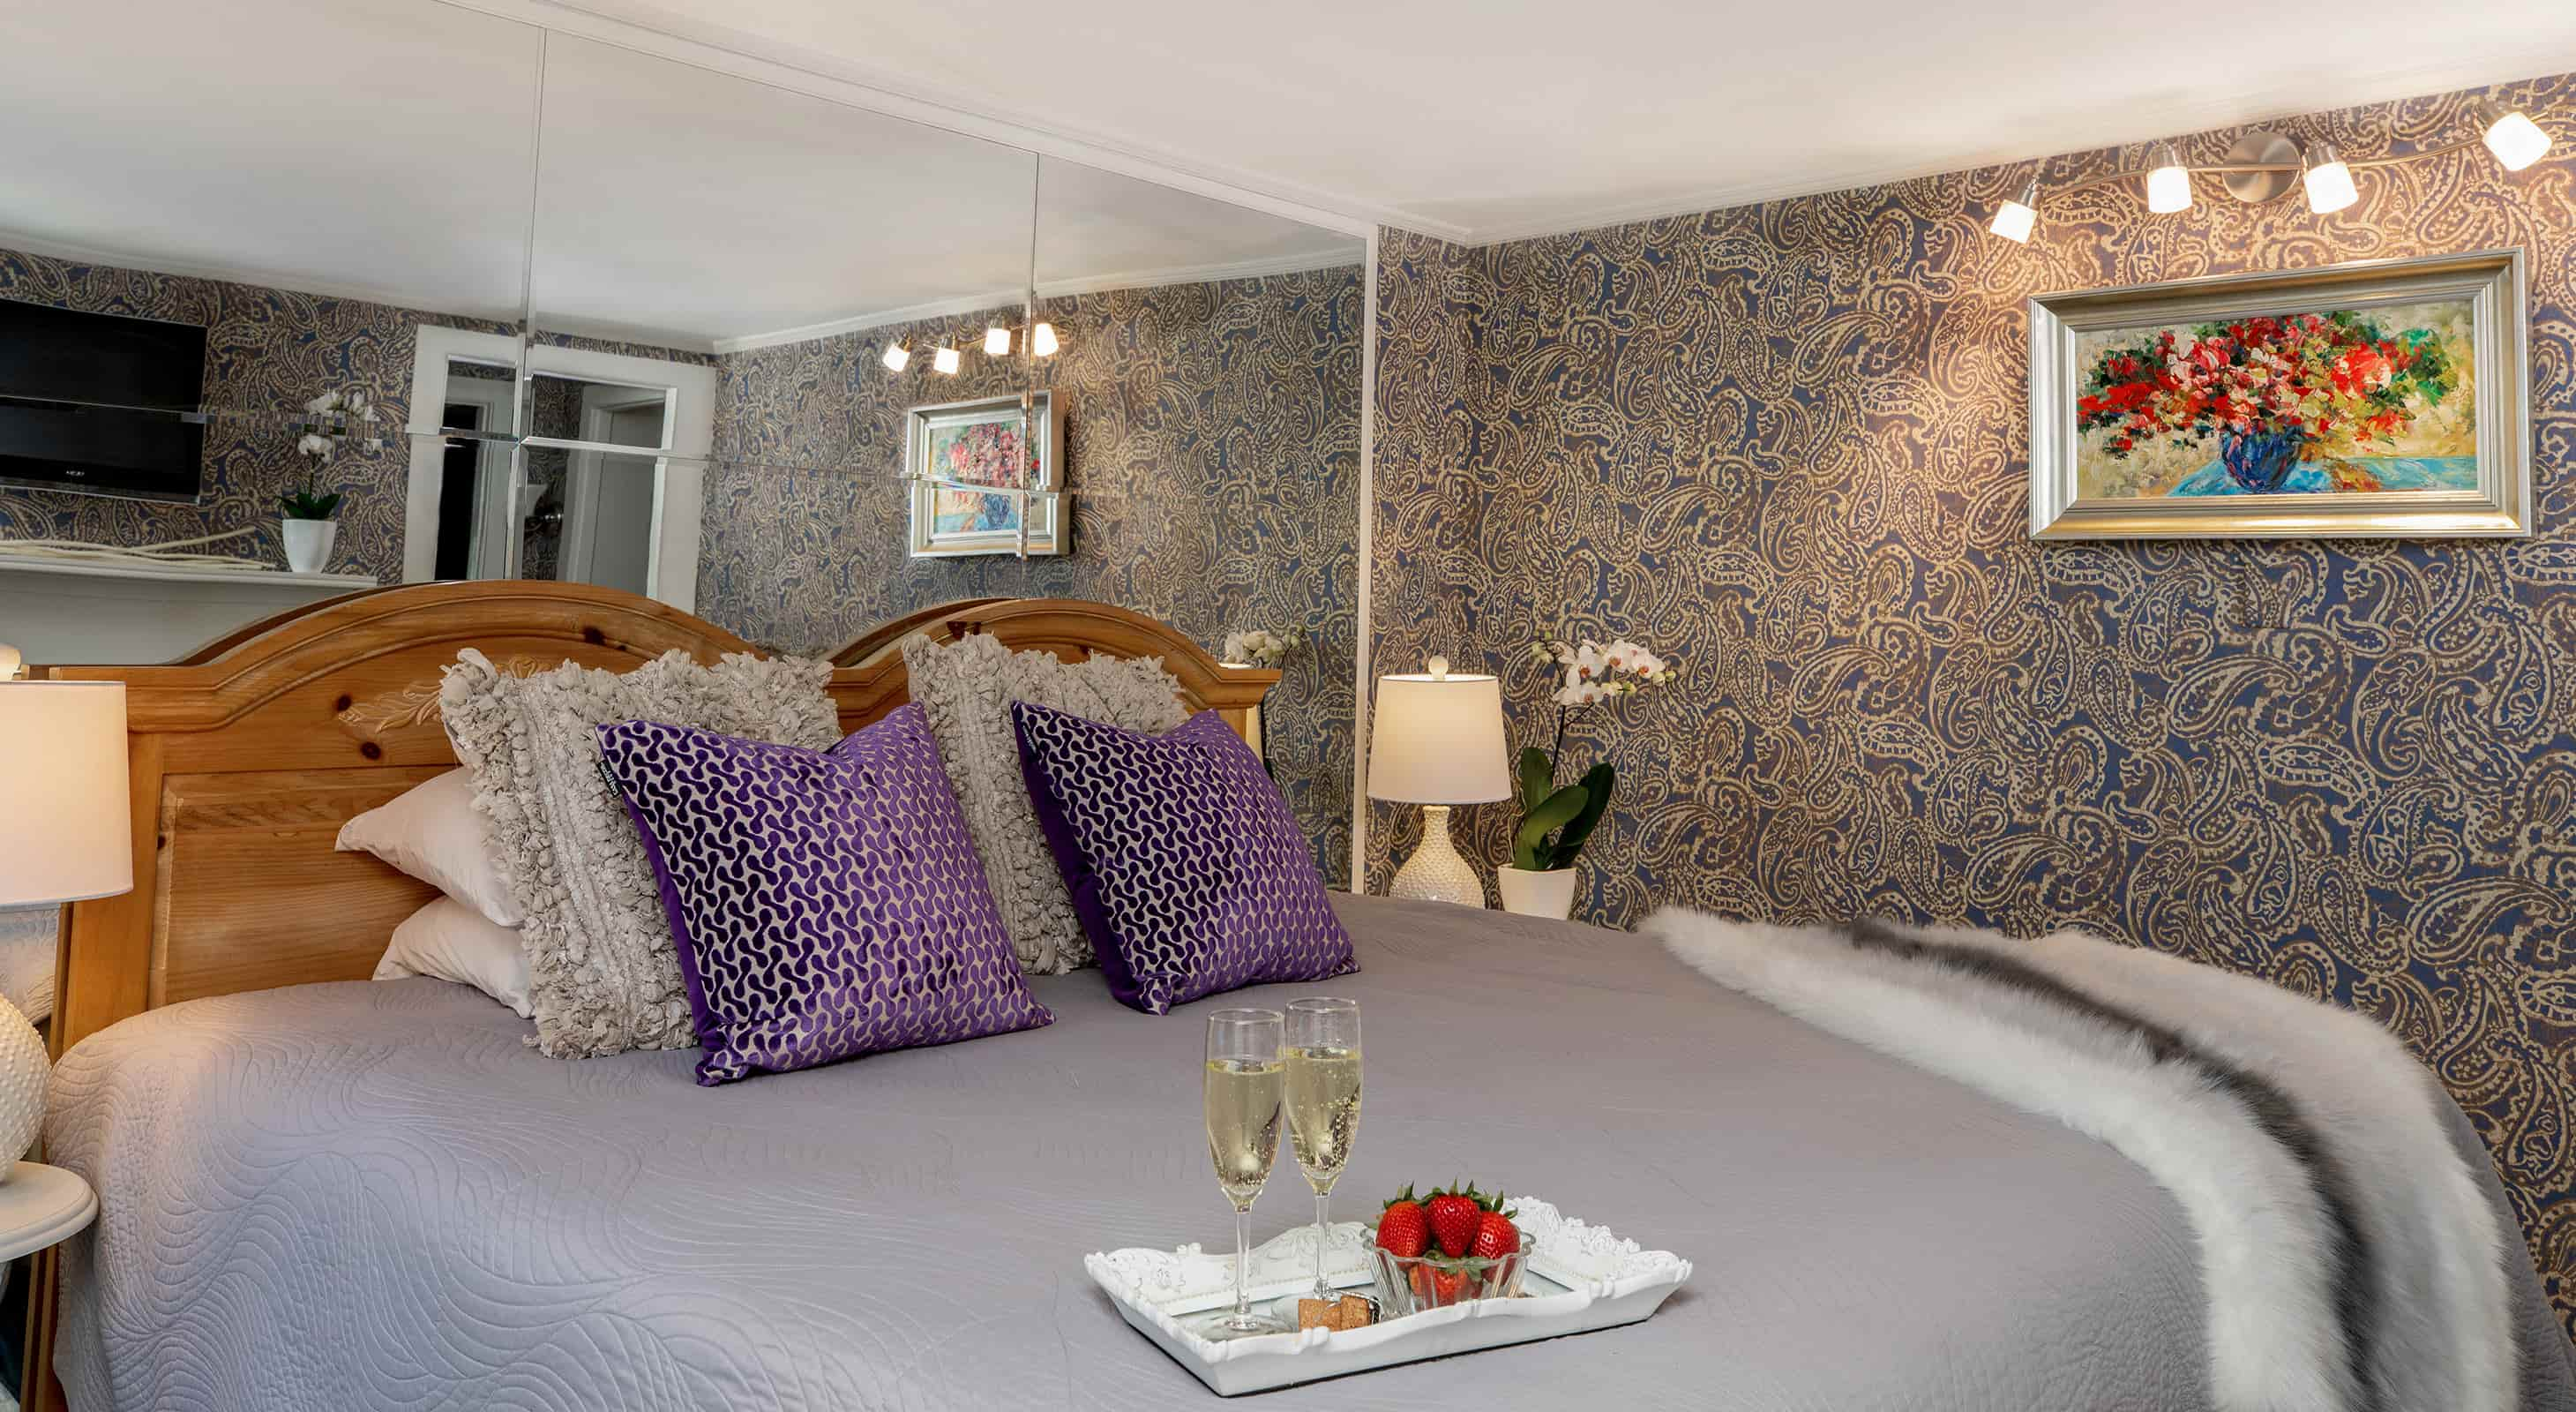 Bed Lavender Suite with sparkling wine and strawberries